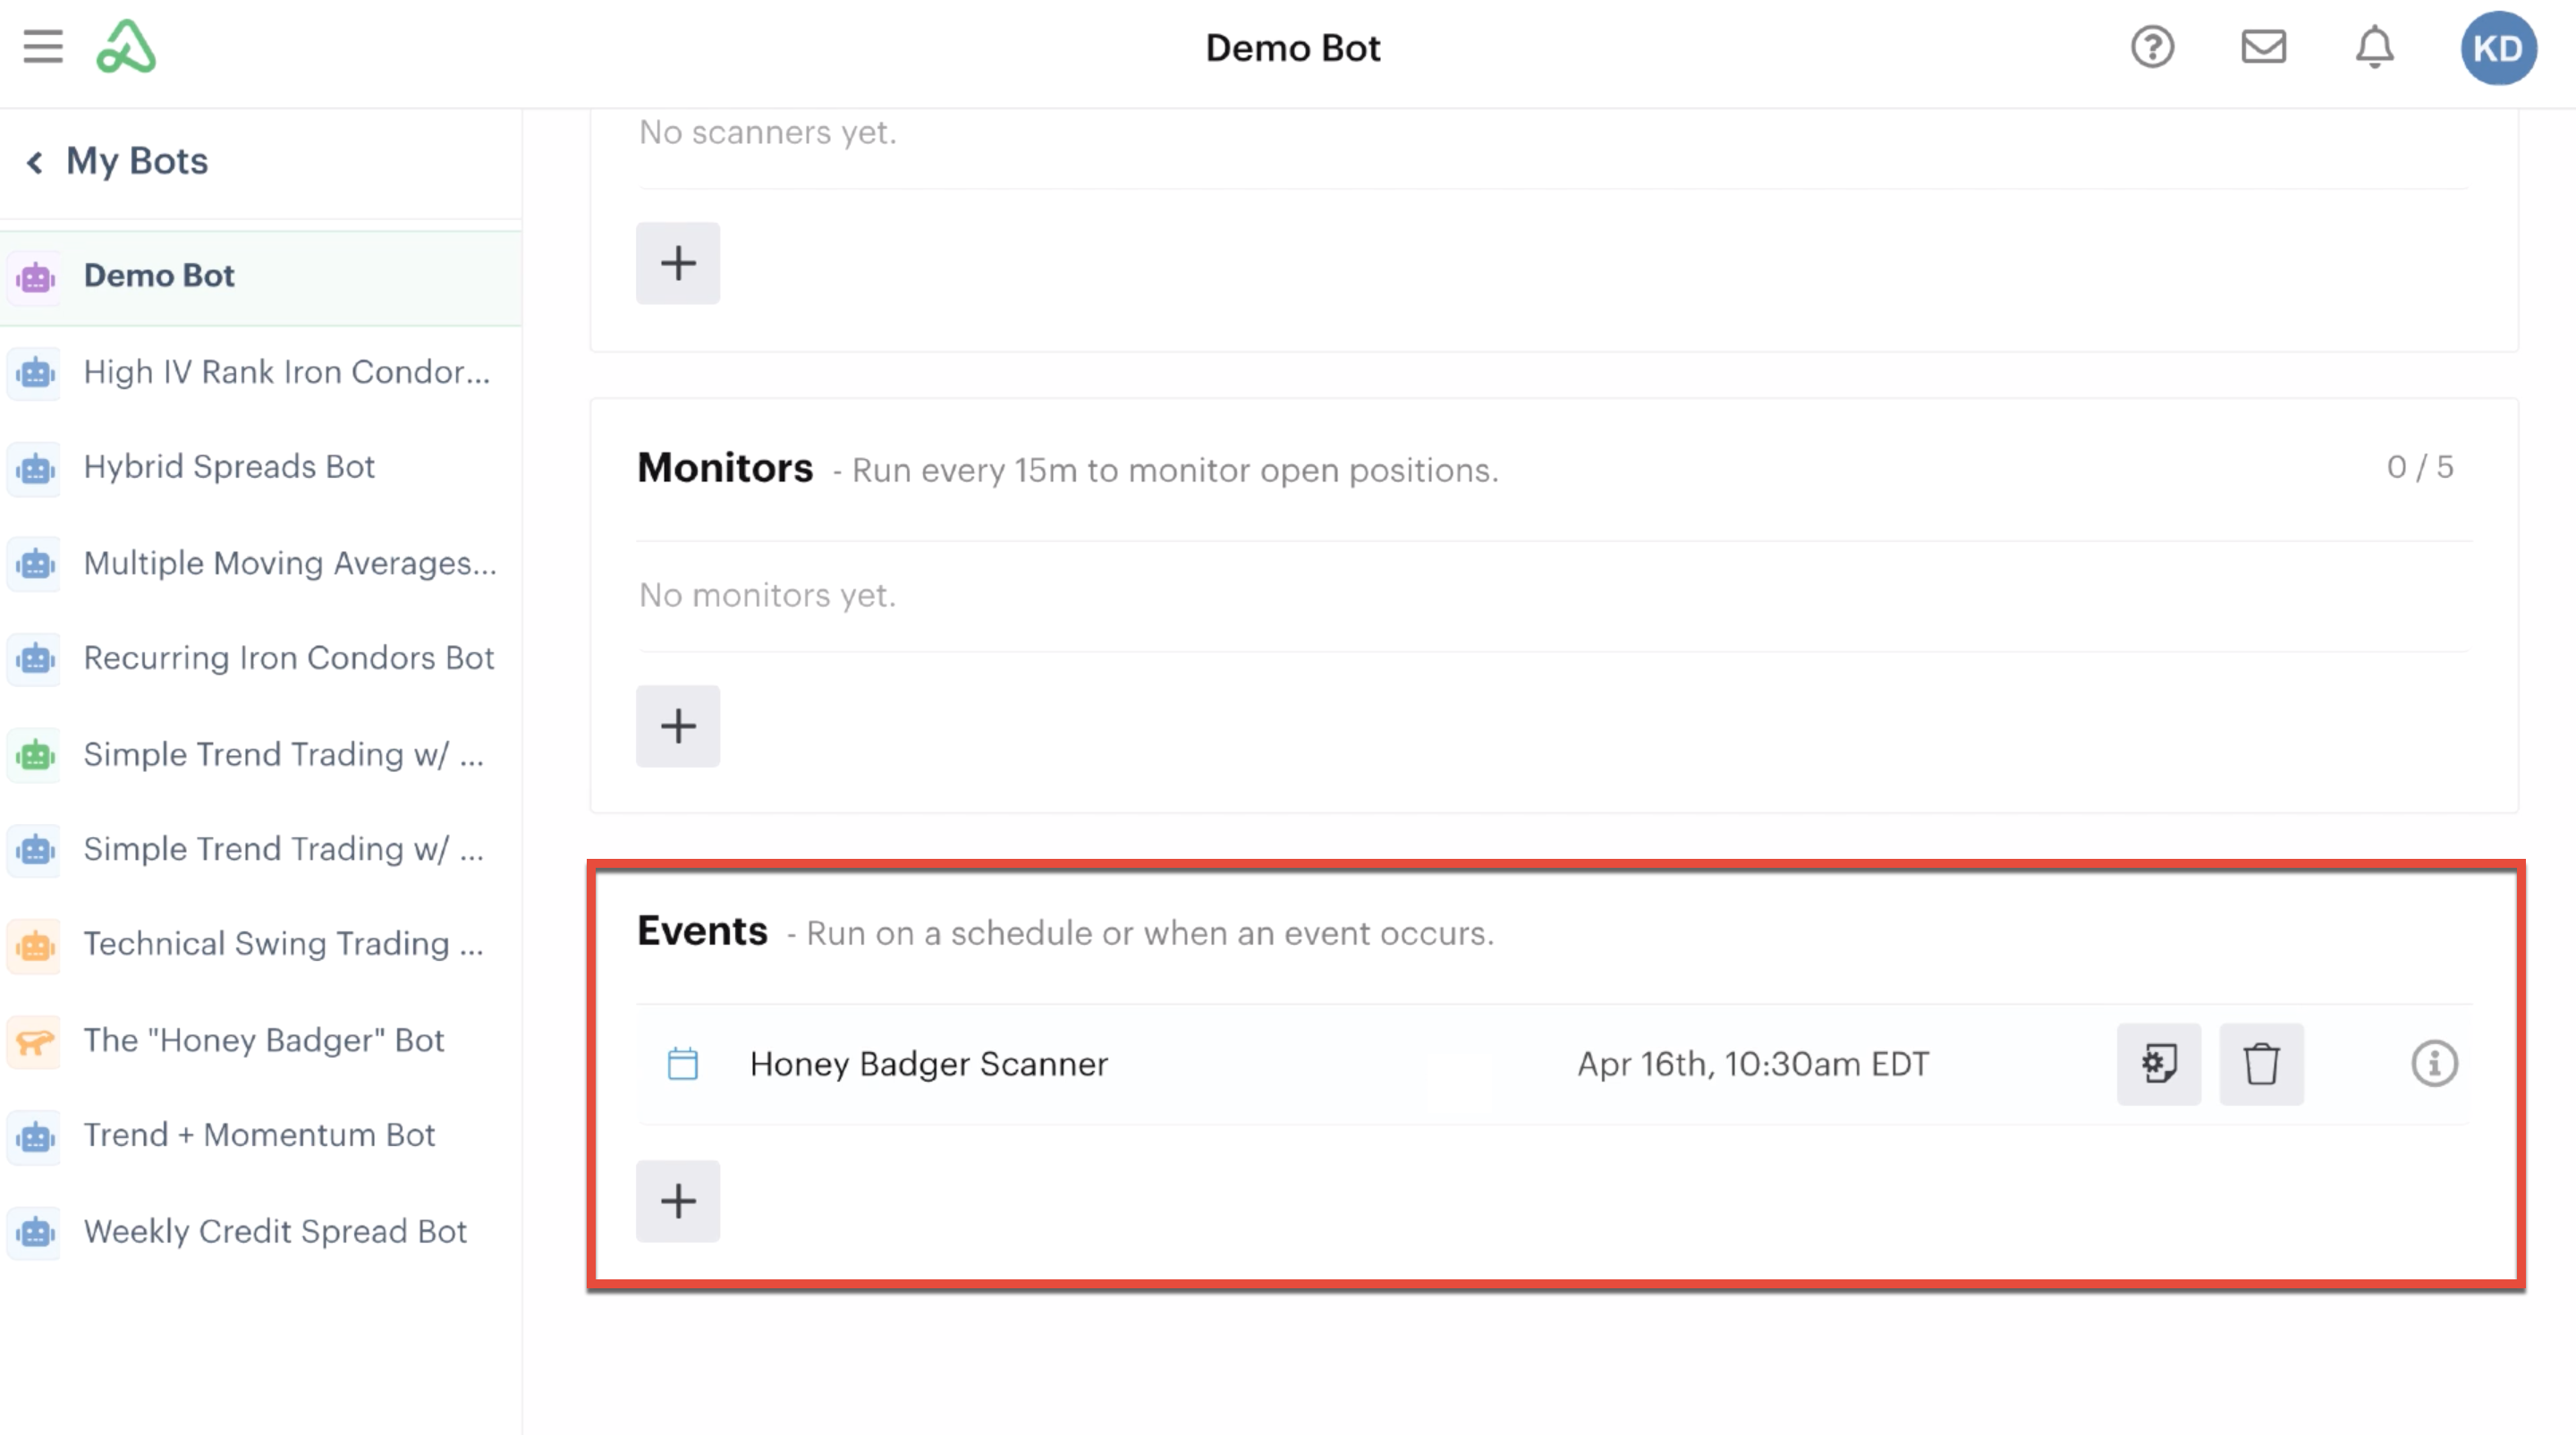 New bot event automation in the events section